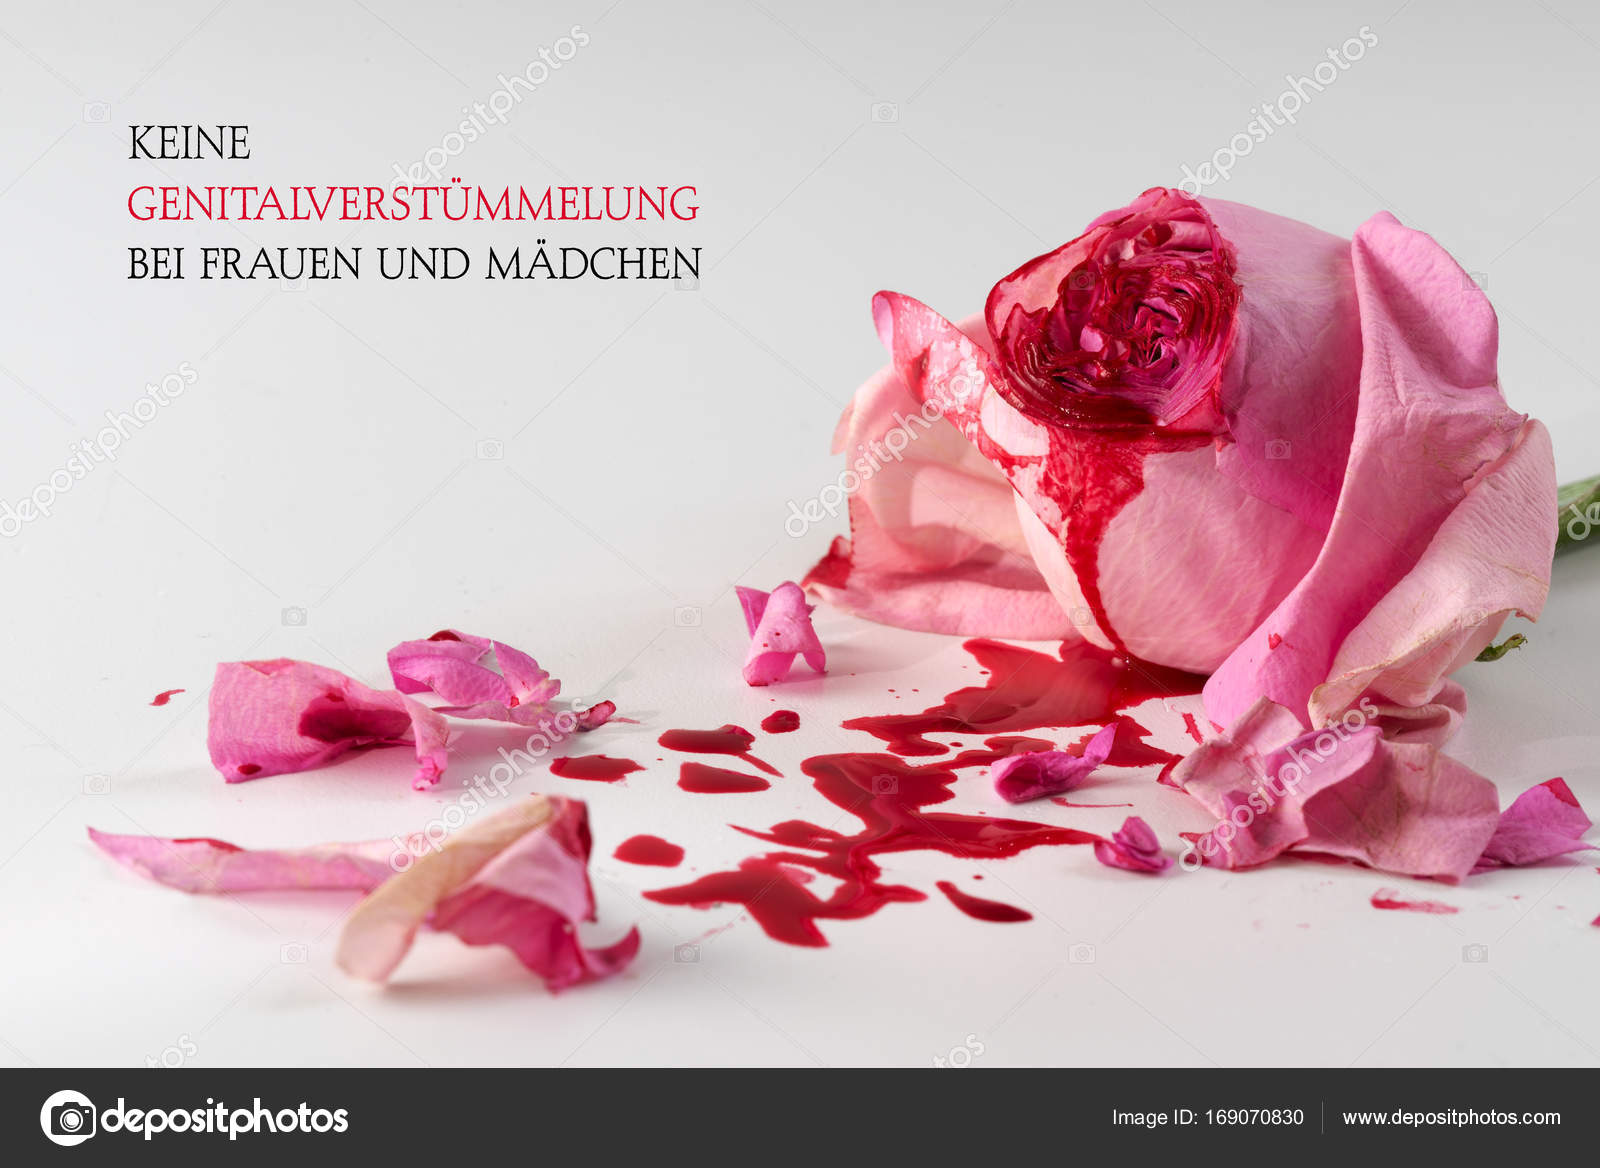 cut rose blossom, blood and petals on a bright gray background with ...